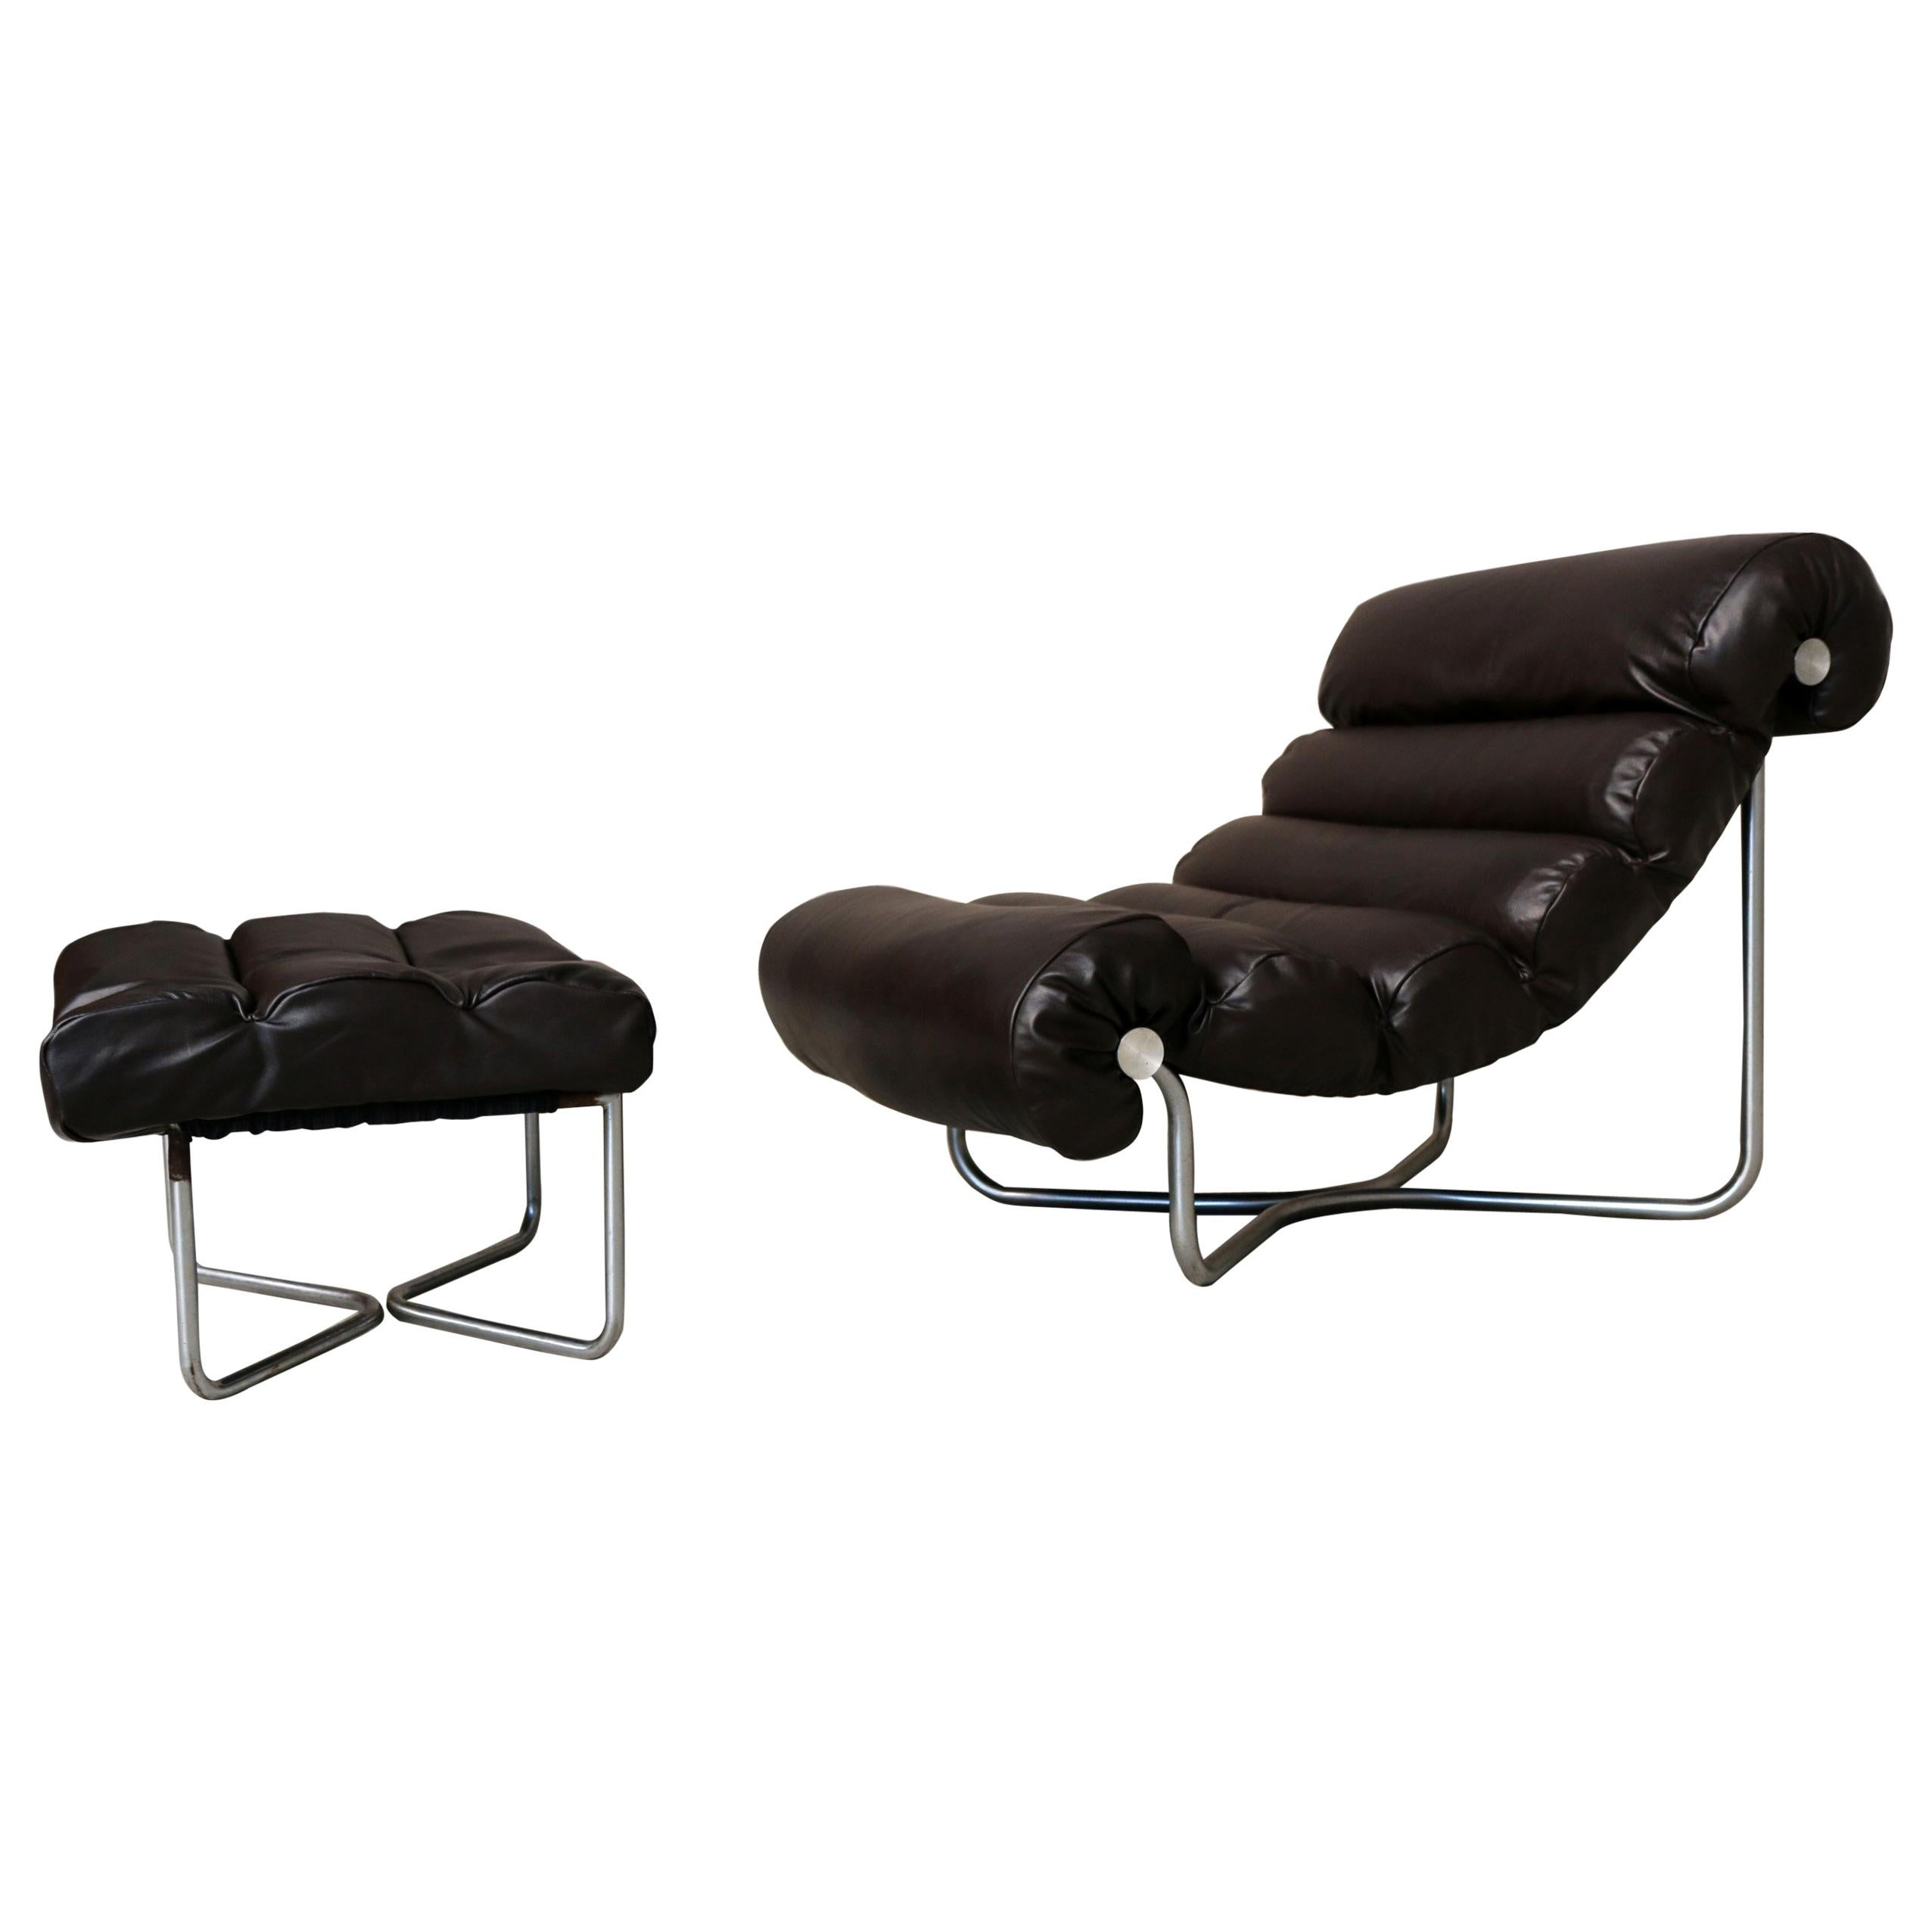 Lounge Stoel Met Hocker.Glasgow Lounge Chair With Ottoman By Georges Van Rijck For